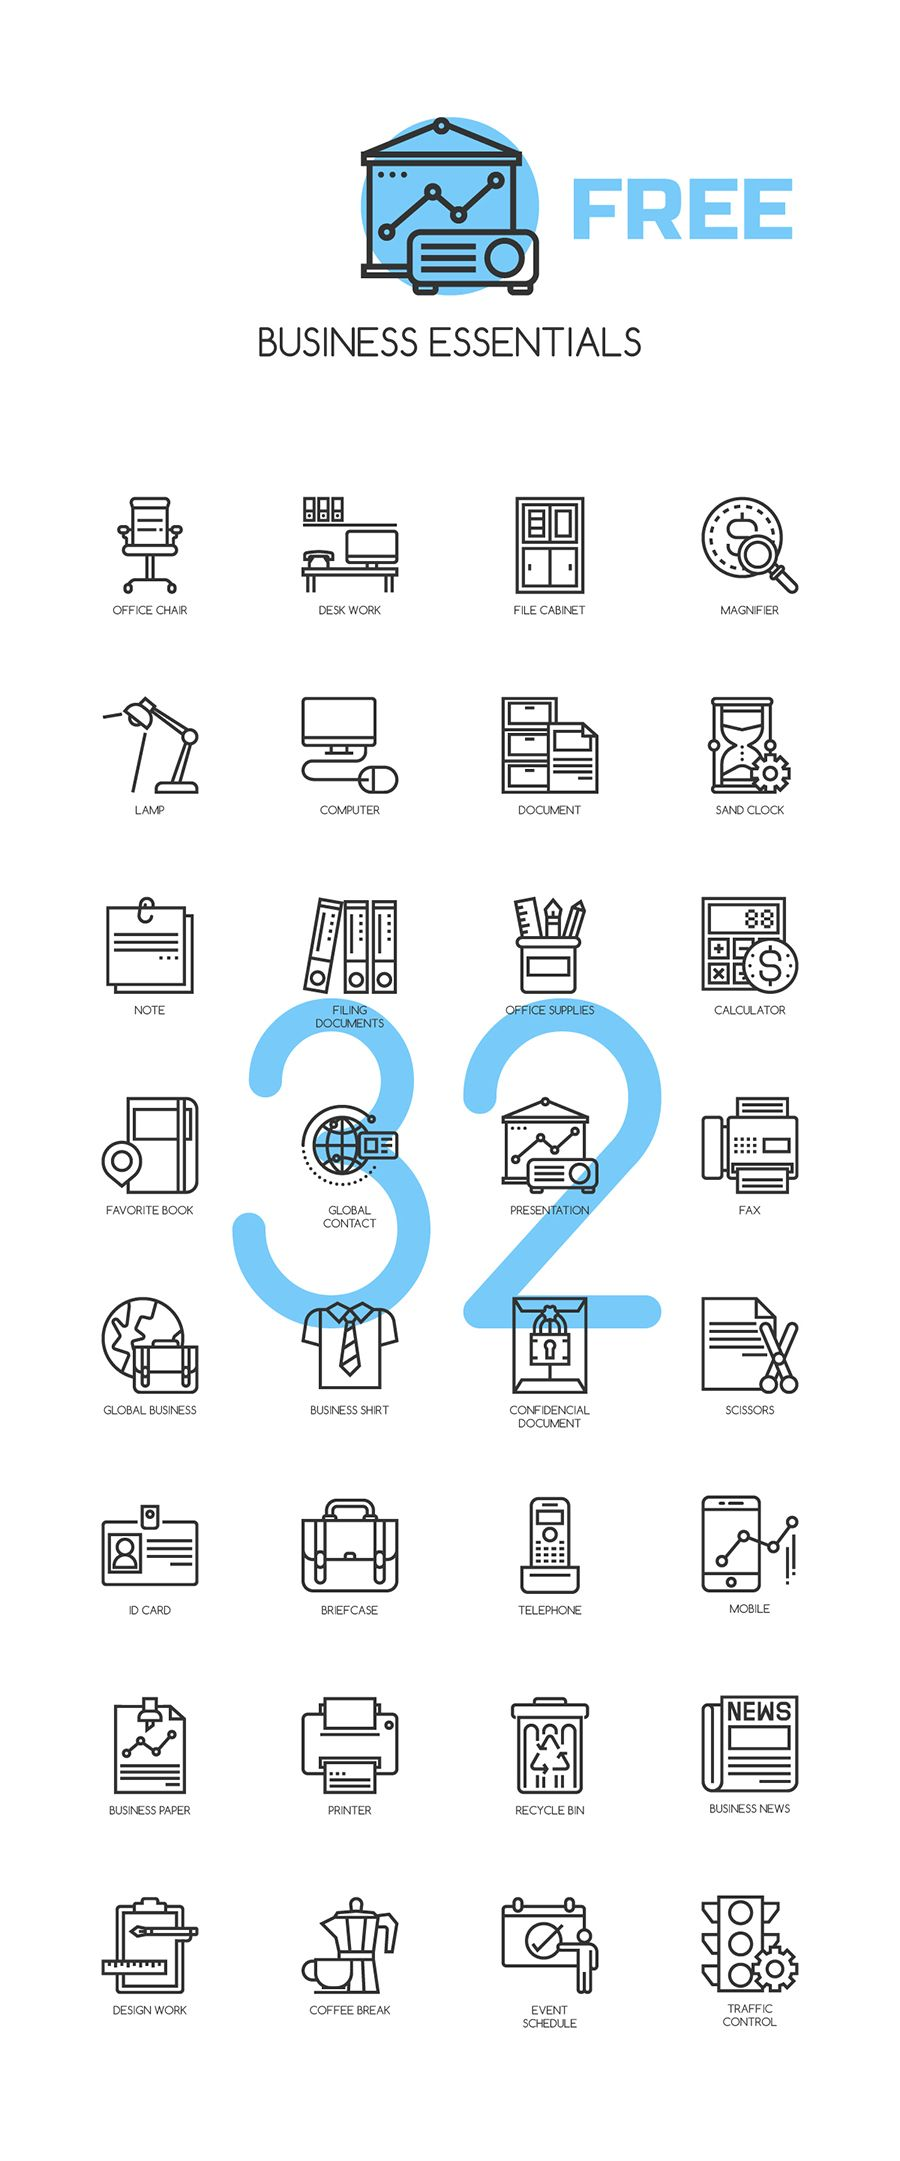 Free 32 Business Essentials Icons | Business essentials, Icons and ...